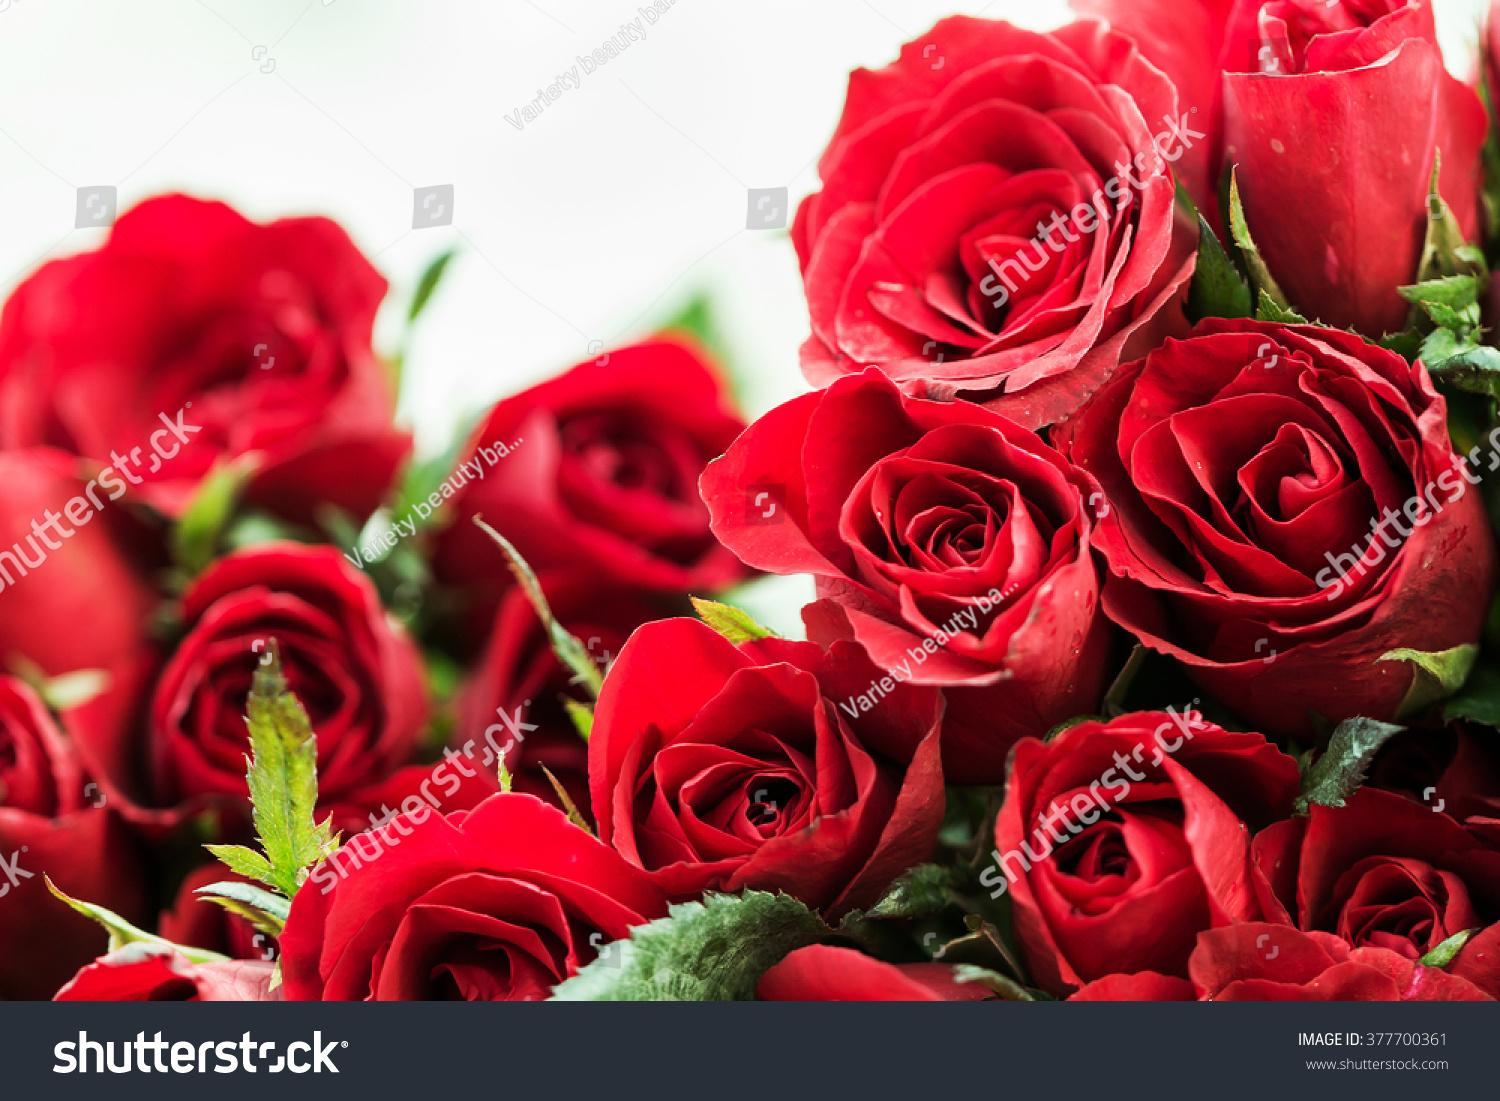 Red roses symbol love stock photo 377700361 shutterstock red roses are the symbol of love buycottarizona